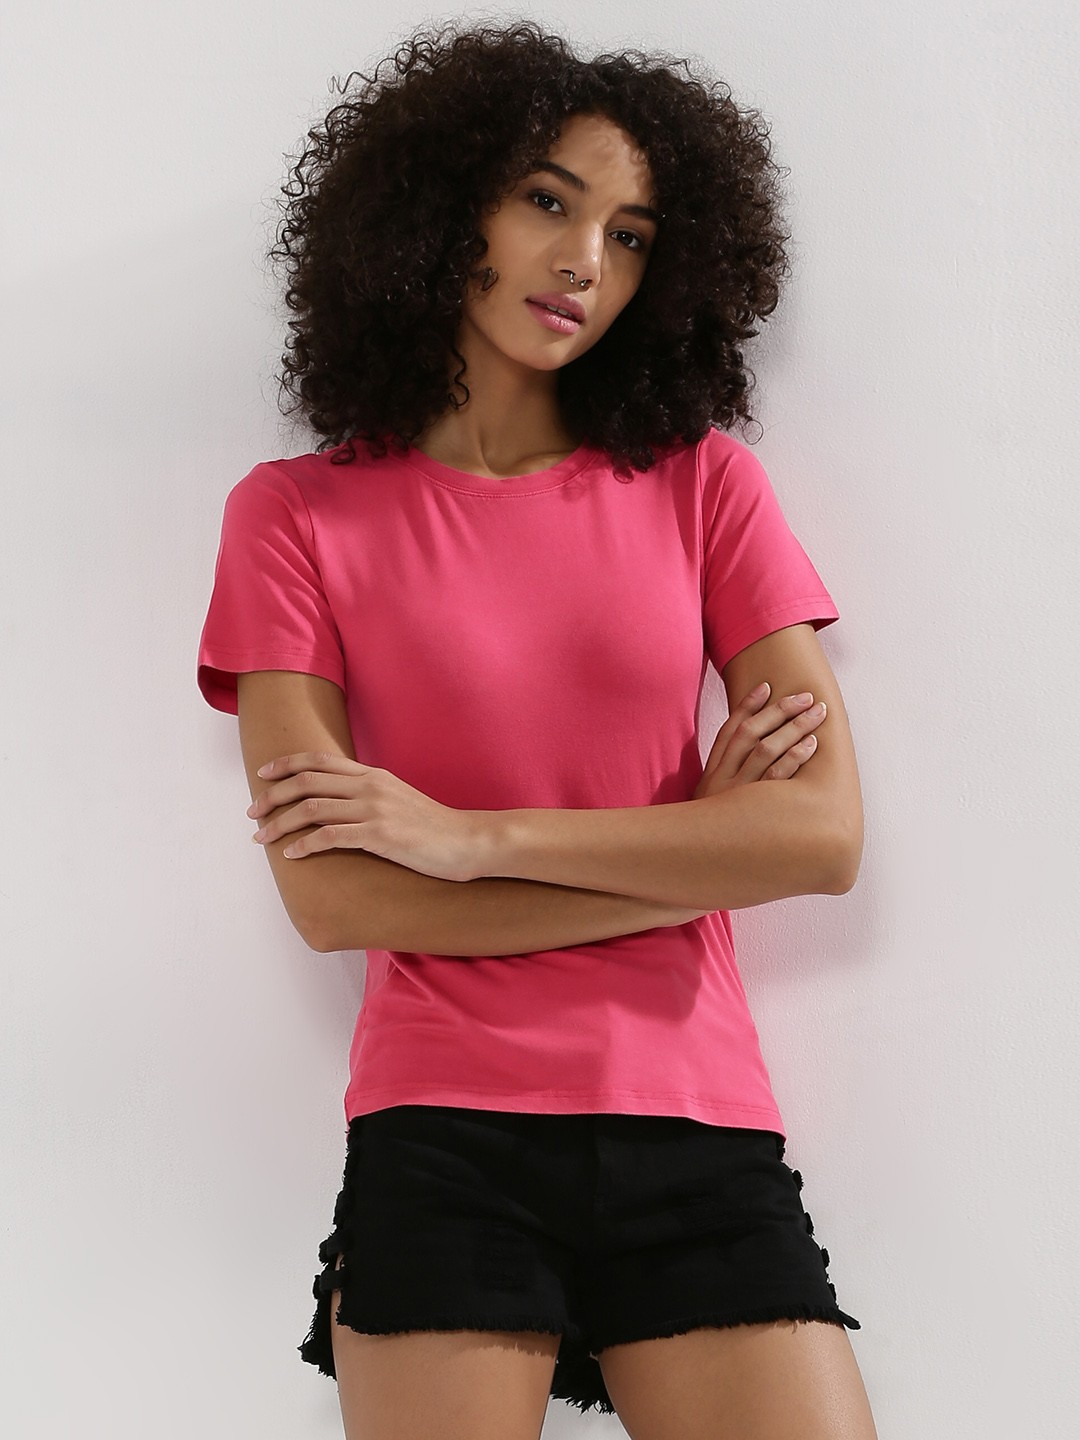 Buy KOOVS Round Neck T-Shirt For Women - Women's Pink T-shirts ...